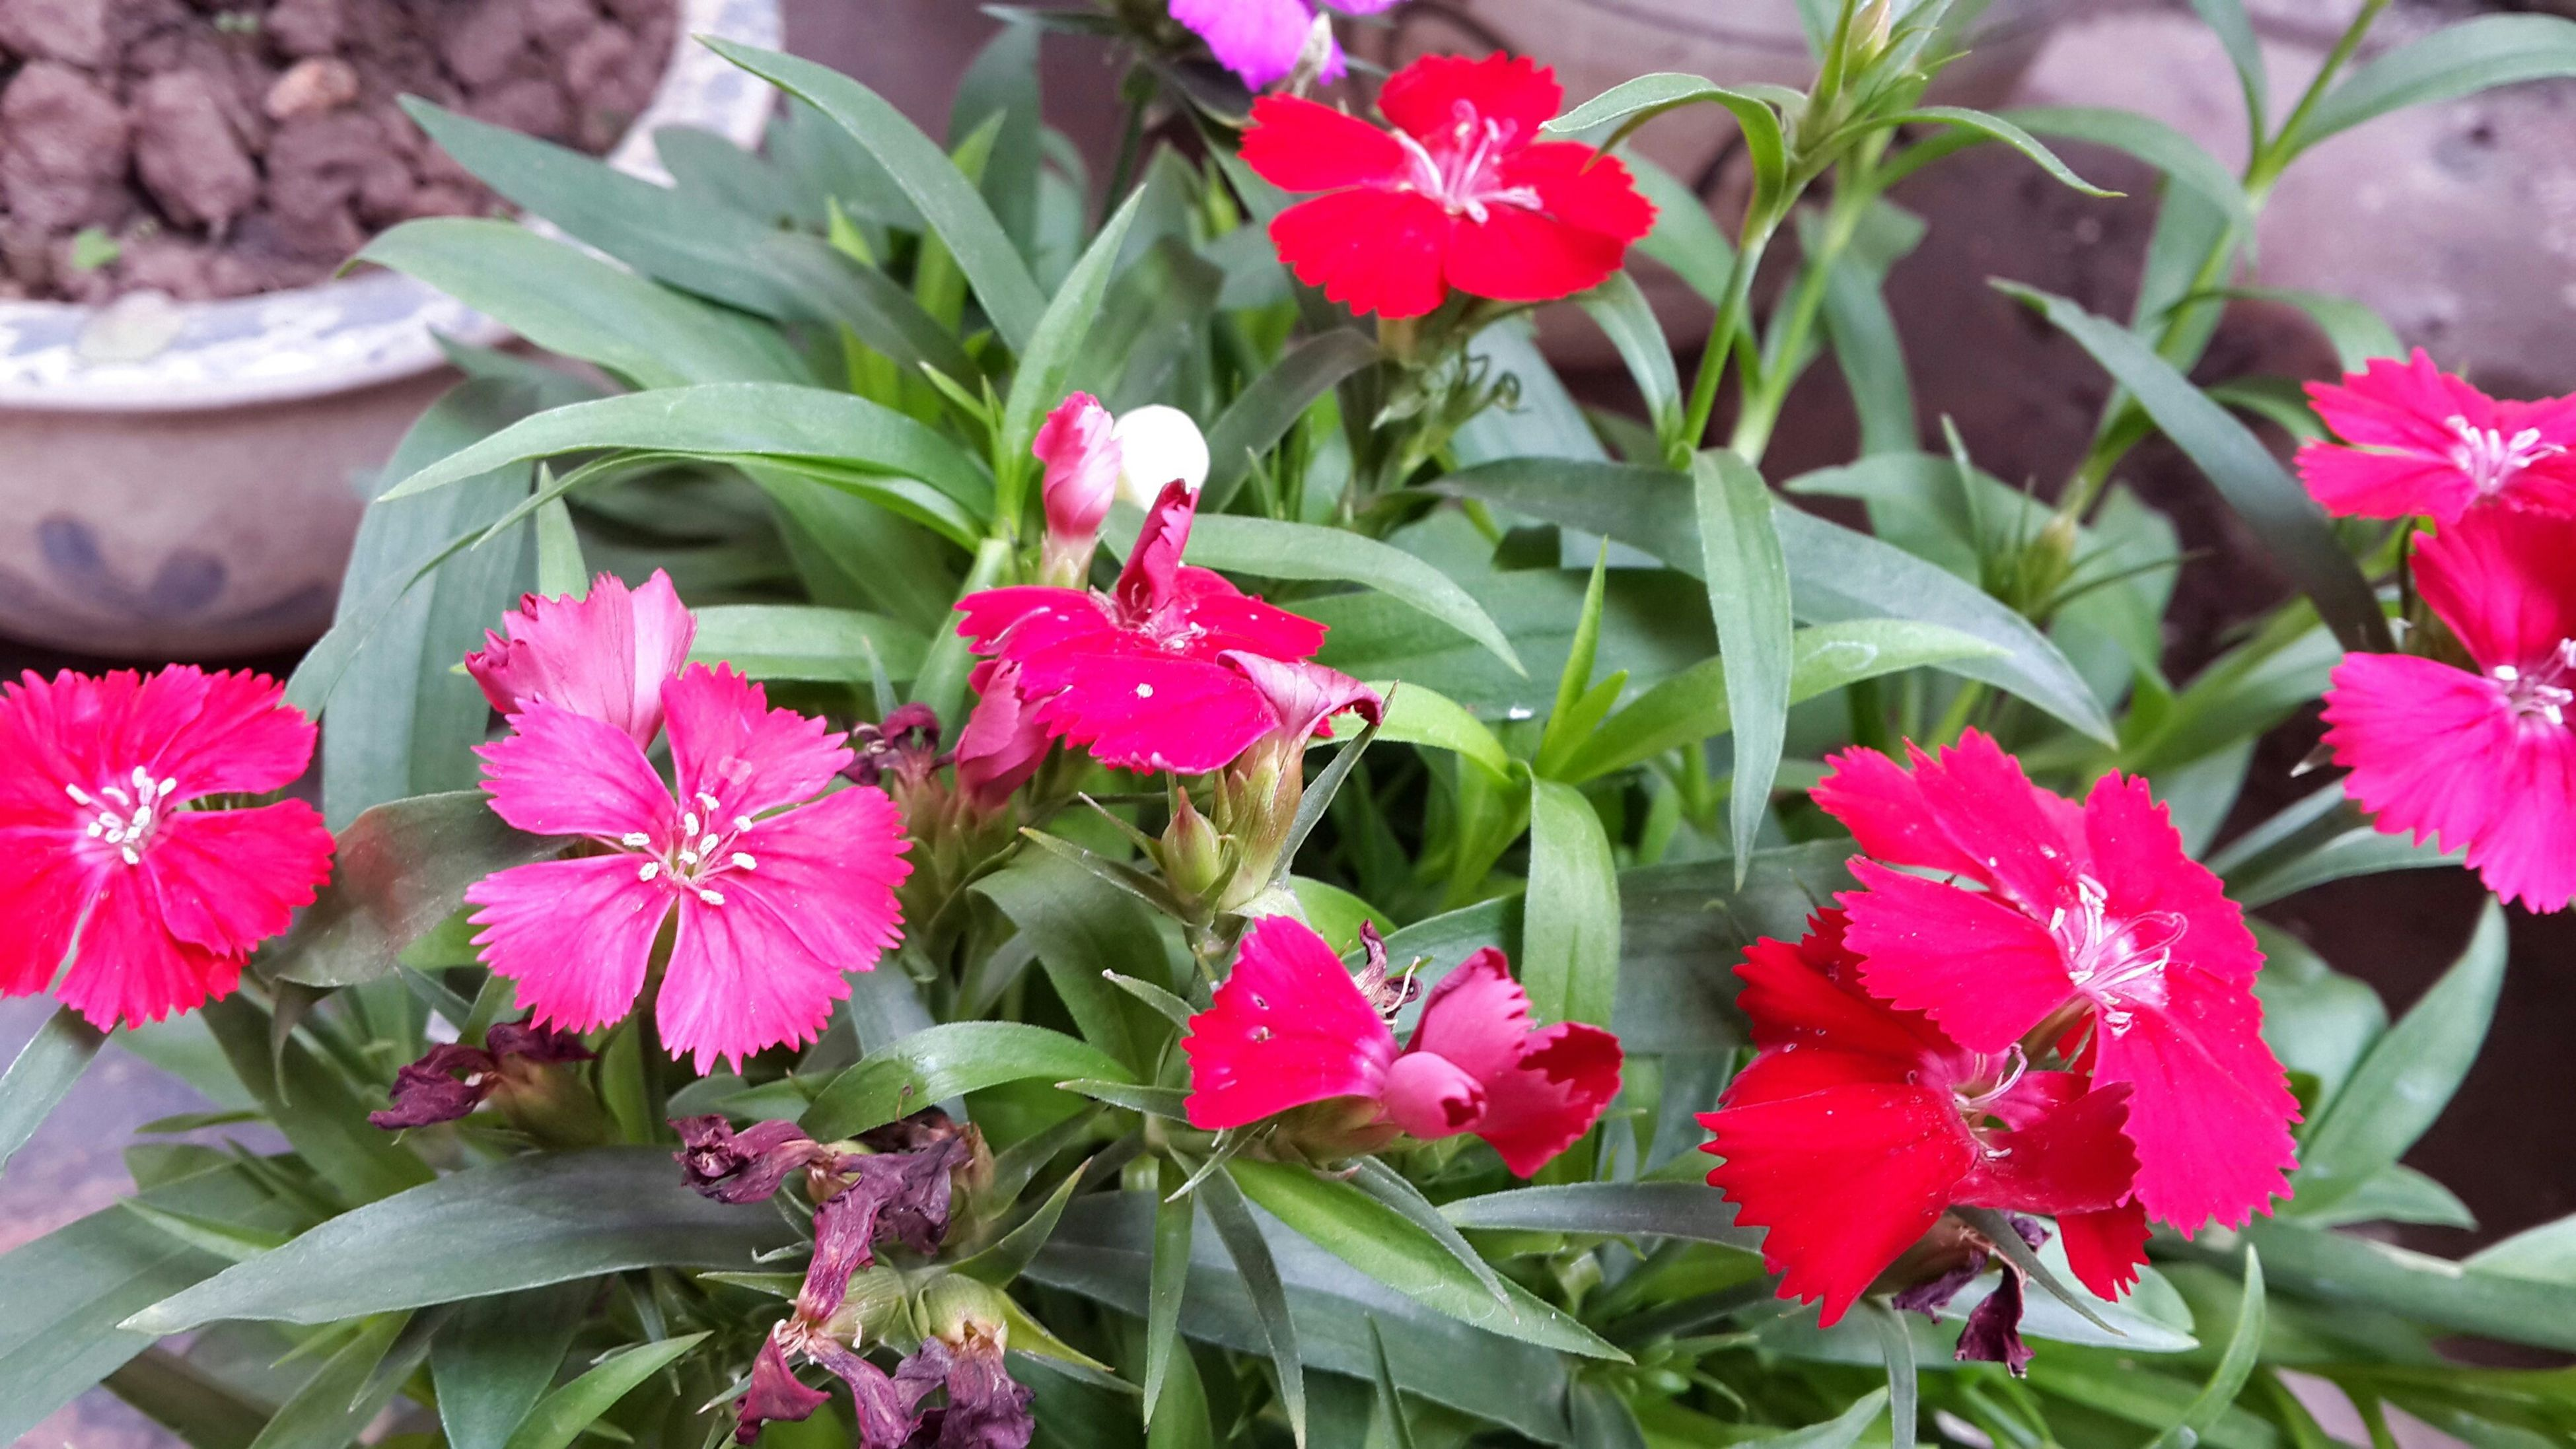 flower, freshness, petal, fragility, growth, beauty in nature, flower head, pink color, plant, red, leaf, nature, blooming, close-up, in bloom, tulip, bud, focus on foreground, blossom, springtime